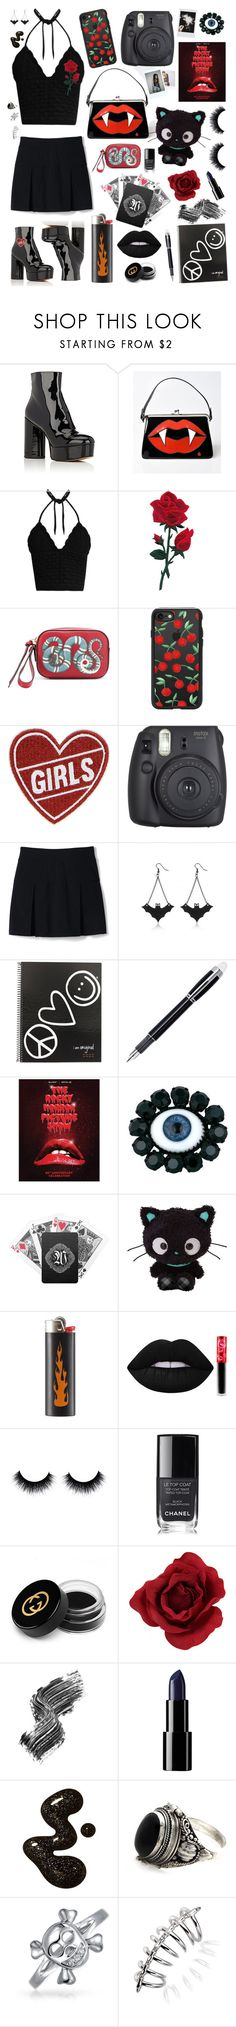 """""""Rosie the Rioter"""" by alexis-marie-burroughs ❤ liked on Polyvore featuring Marc Jacobs, Hell Bunny, RED Valentino, Gucci, Casetify, Fujifilm, Lands' End, Peace Love World, Montblanc and Rodarte"""